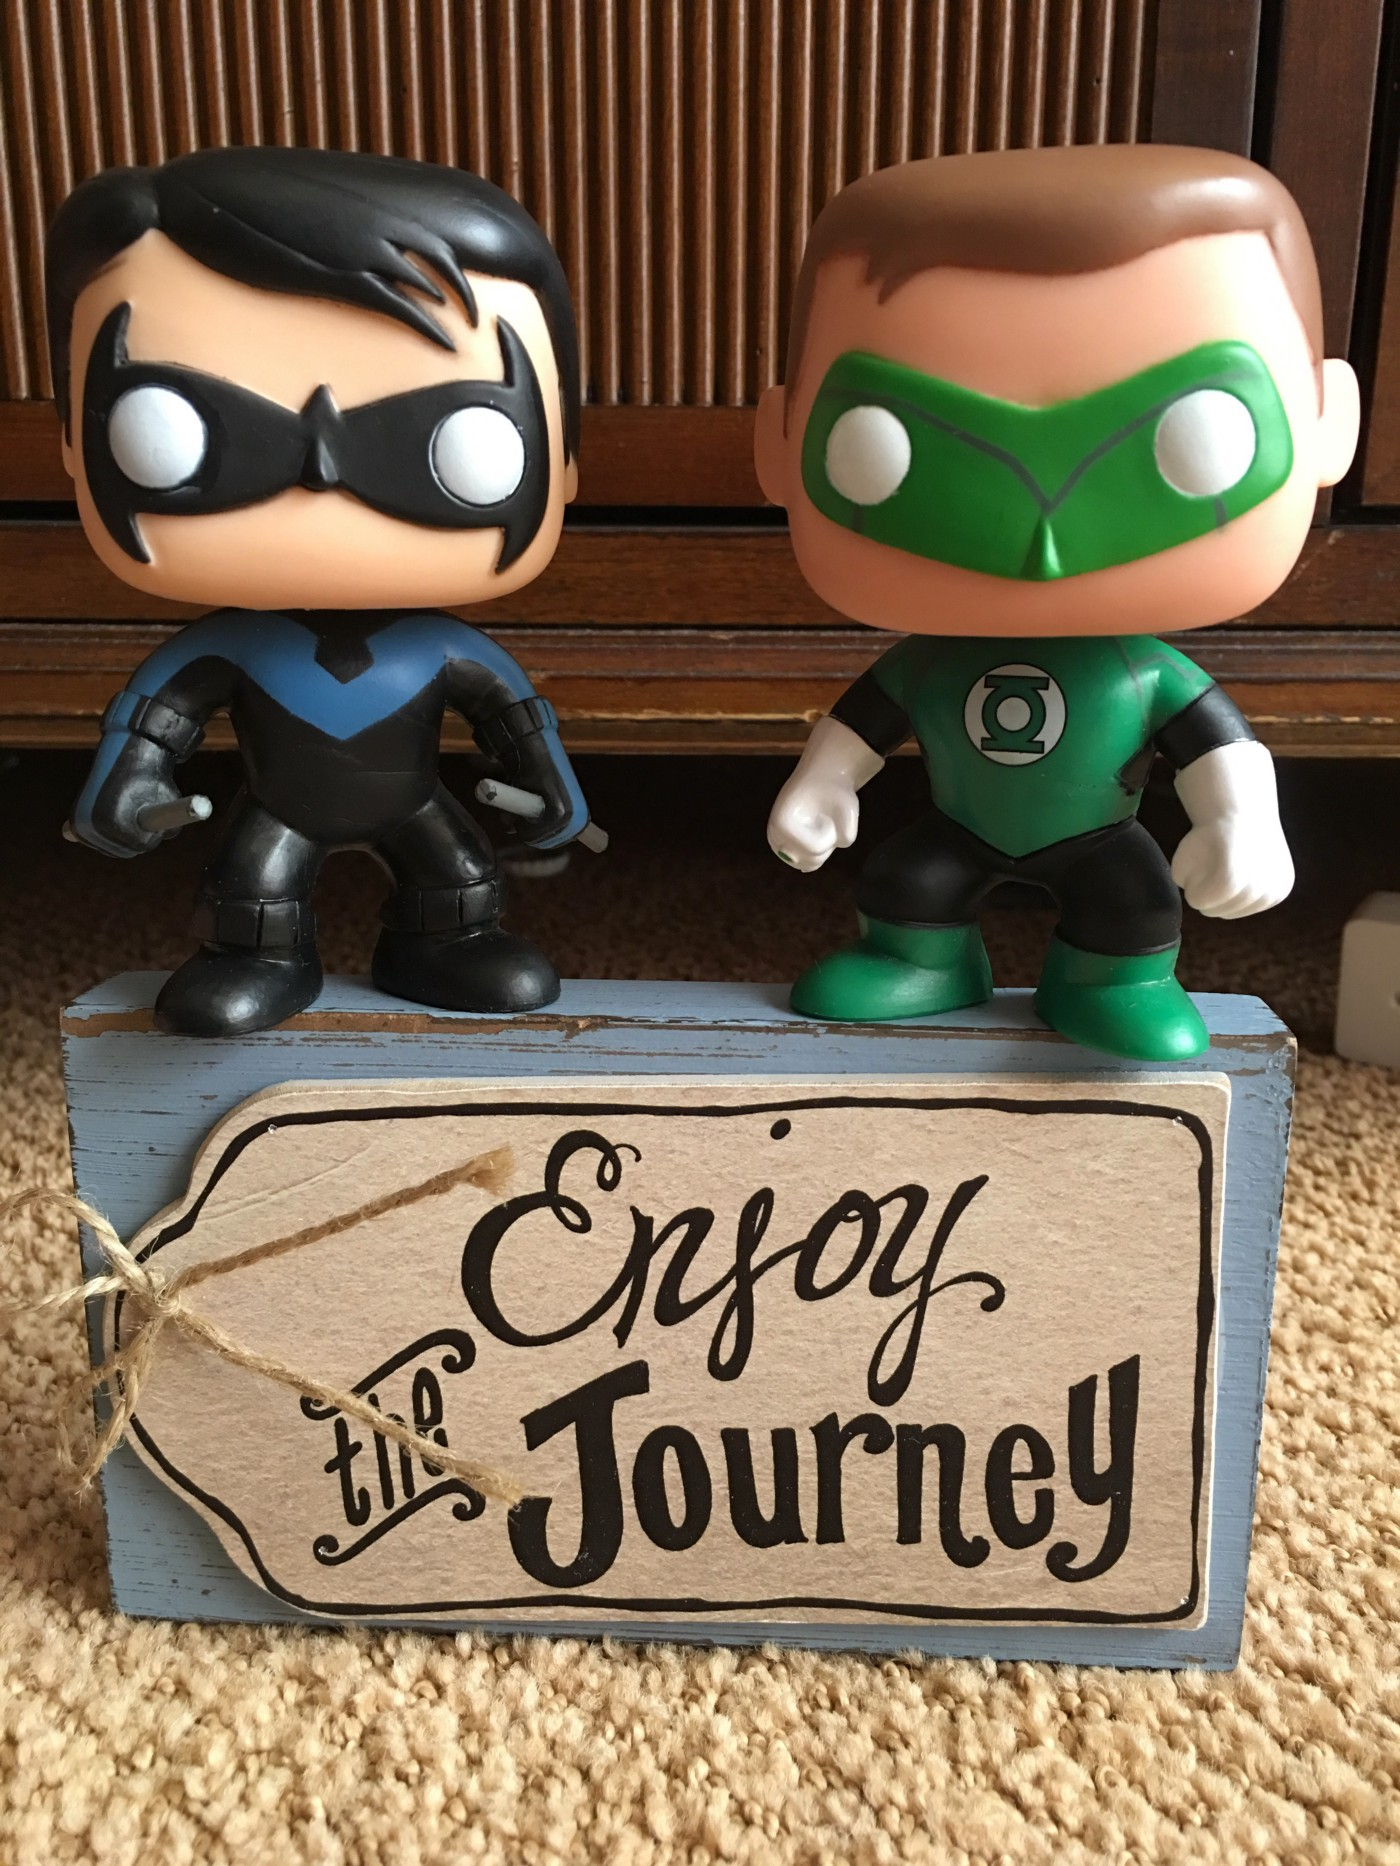 Funko figures of Nightwing and Green Lantern on Enjoy the Journey decoration.